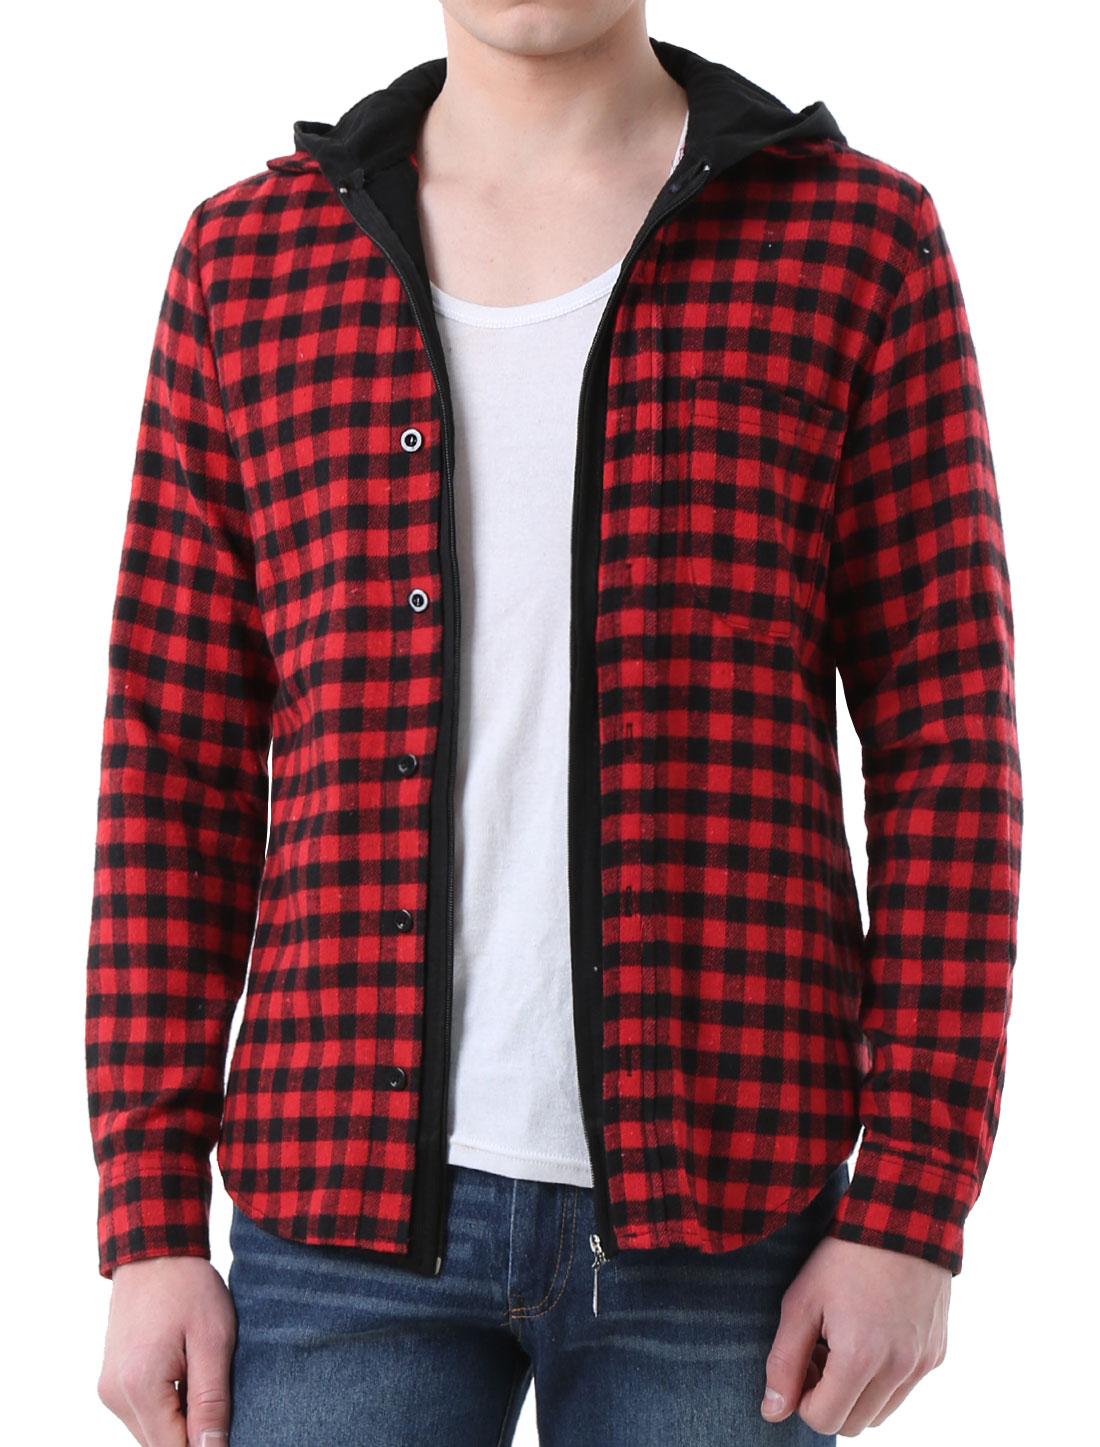 Mens Contrast Check Pattern Black Red Stylish Button Closure Hoodie Shirt M